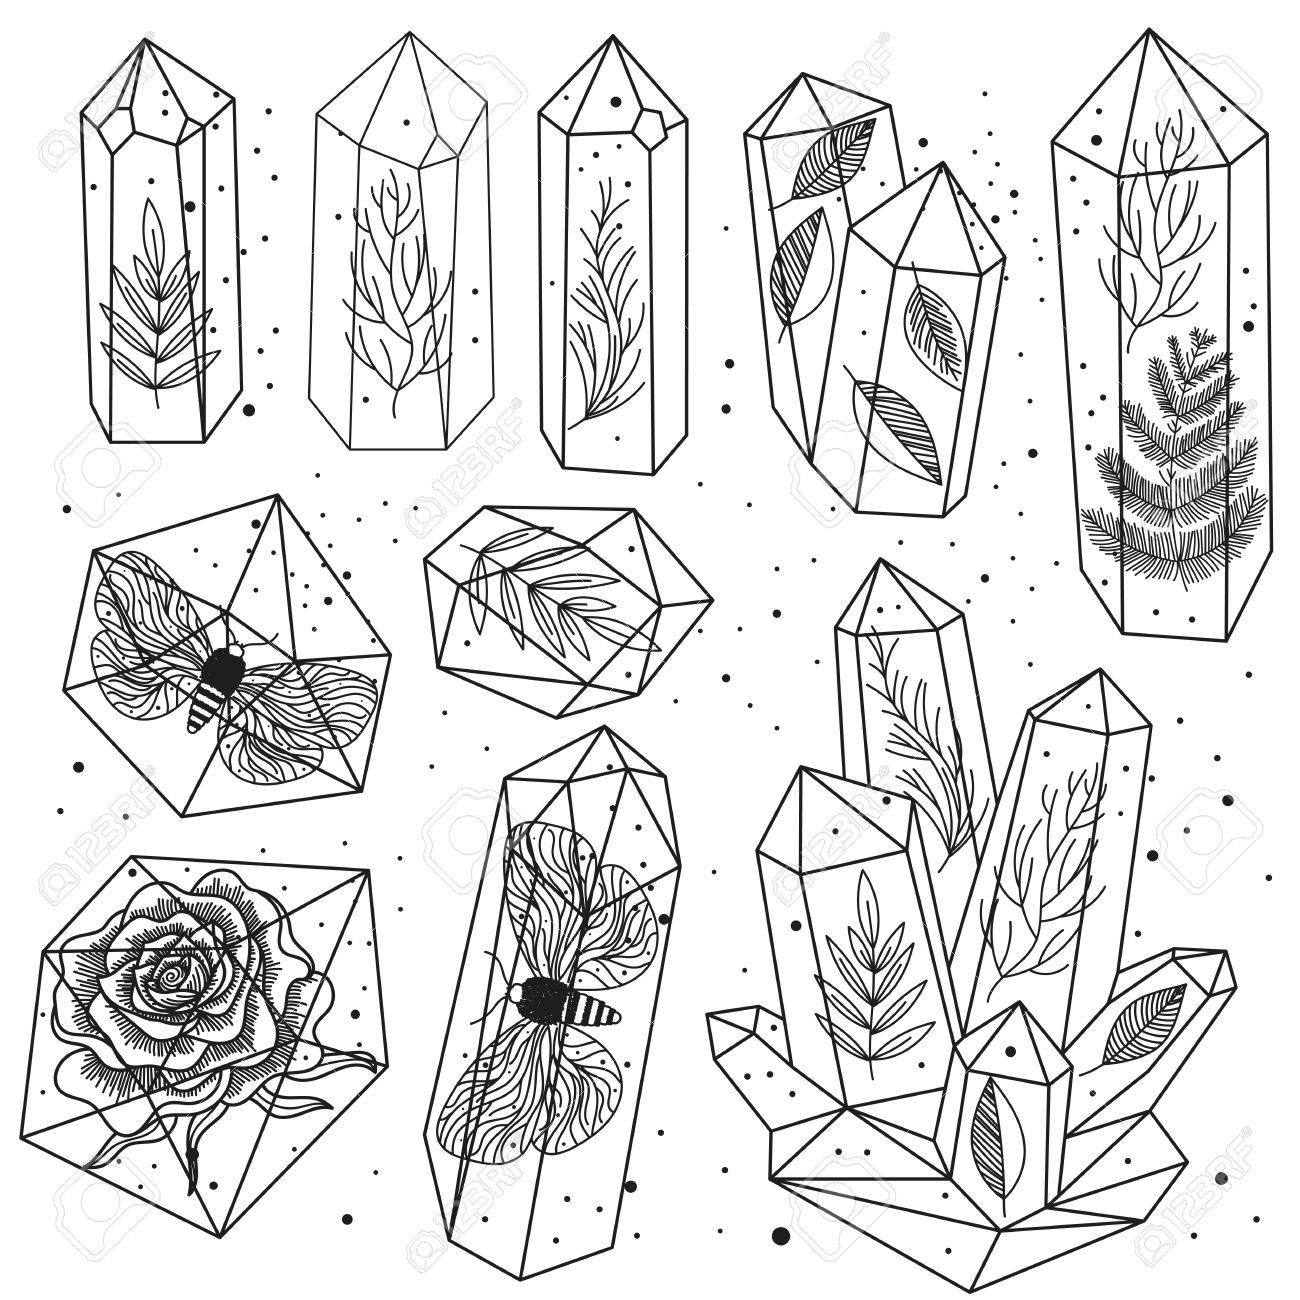 1300x1300 Set Of Hand Drawn Line Art Crystals And Leafs, Moths, Rose Inside